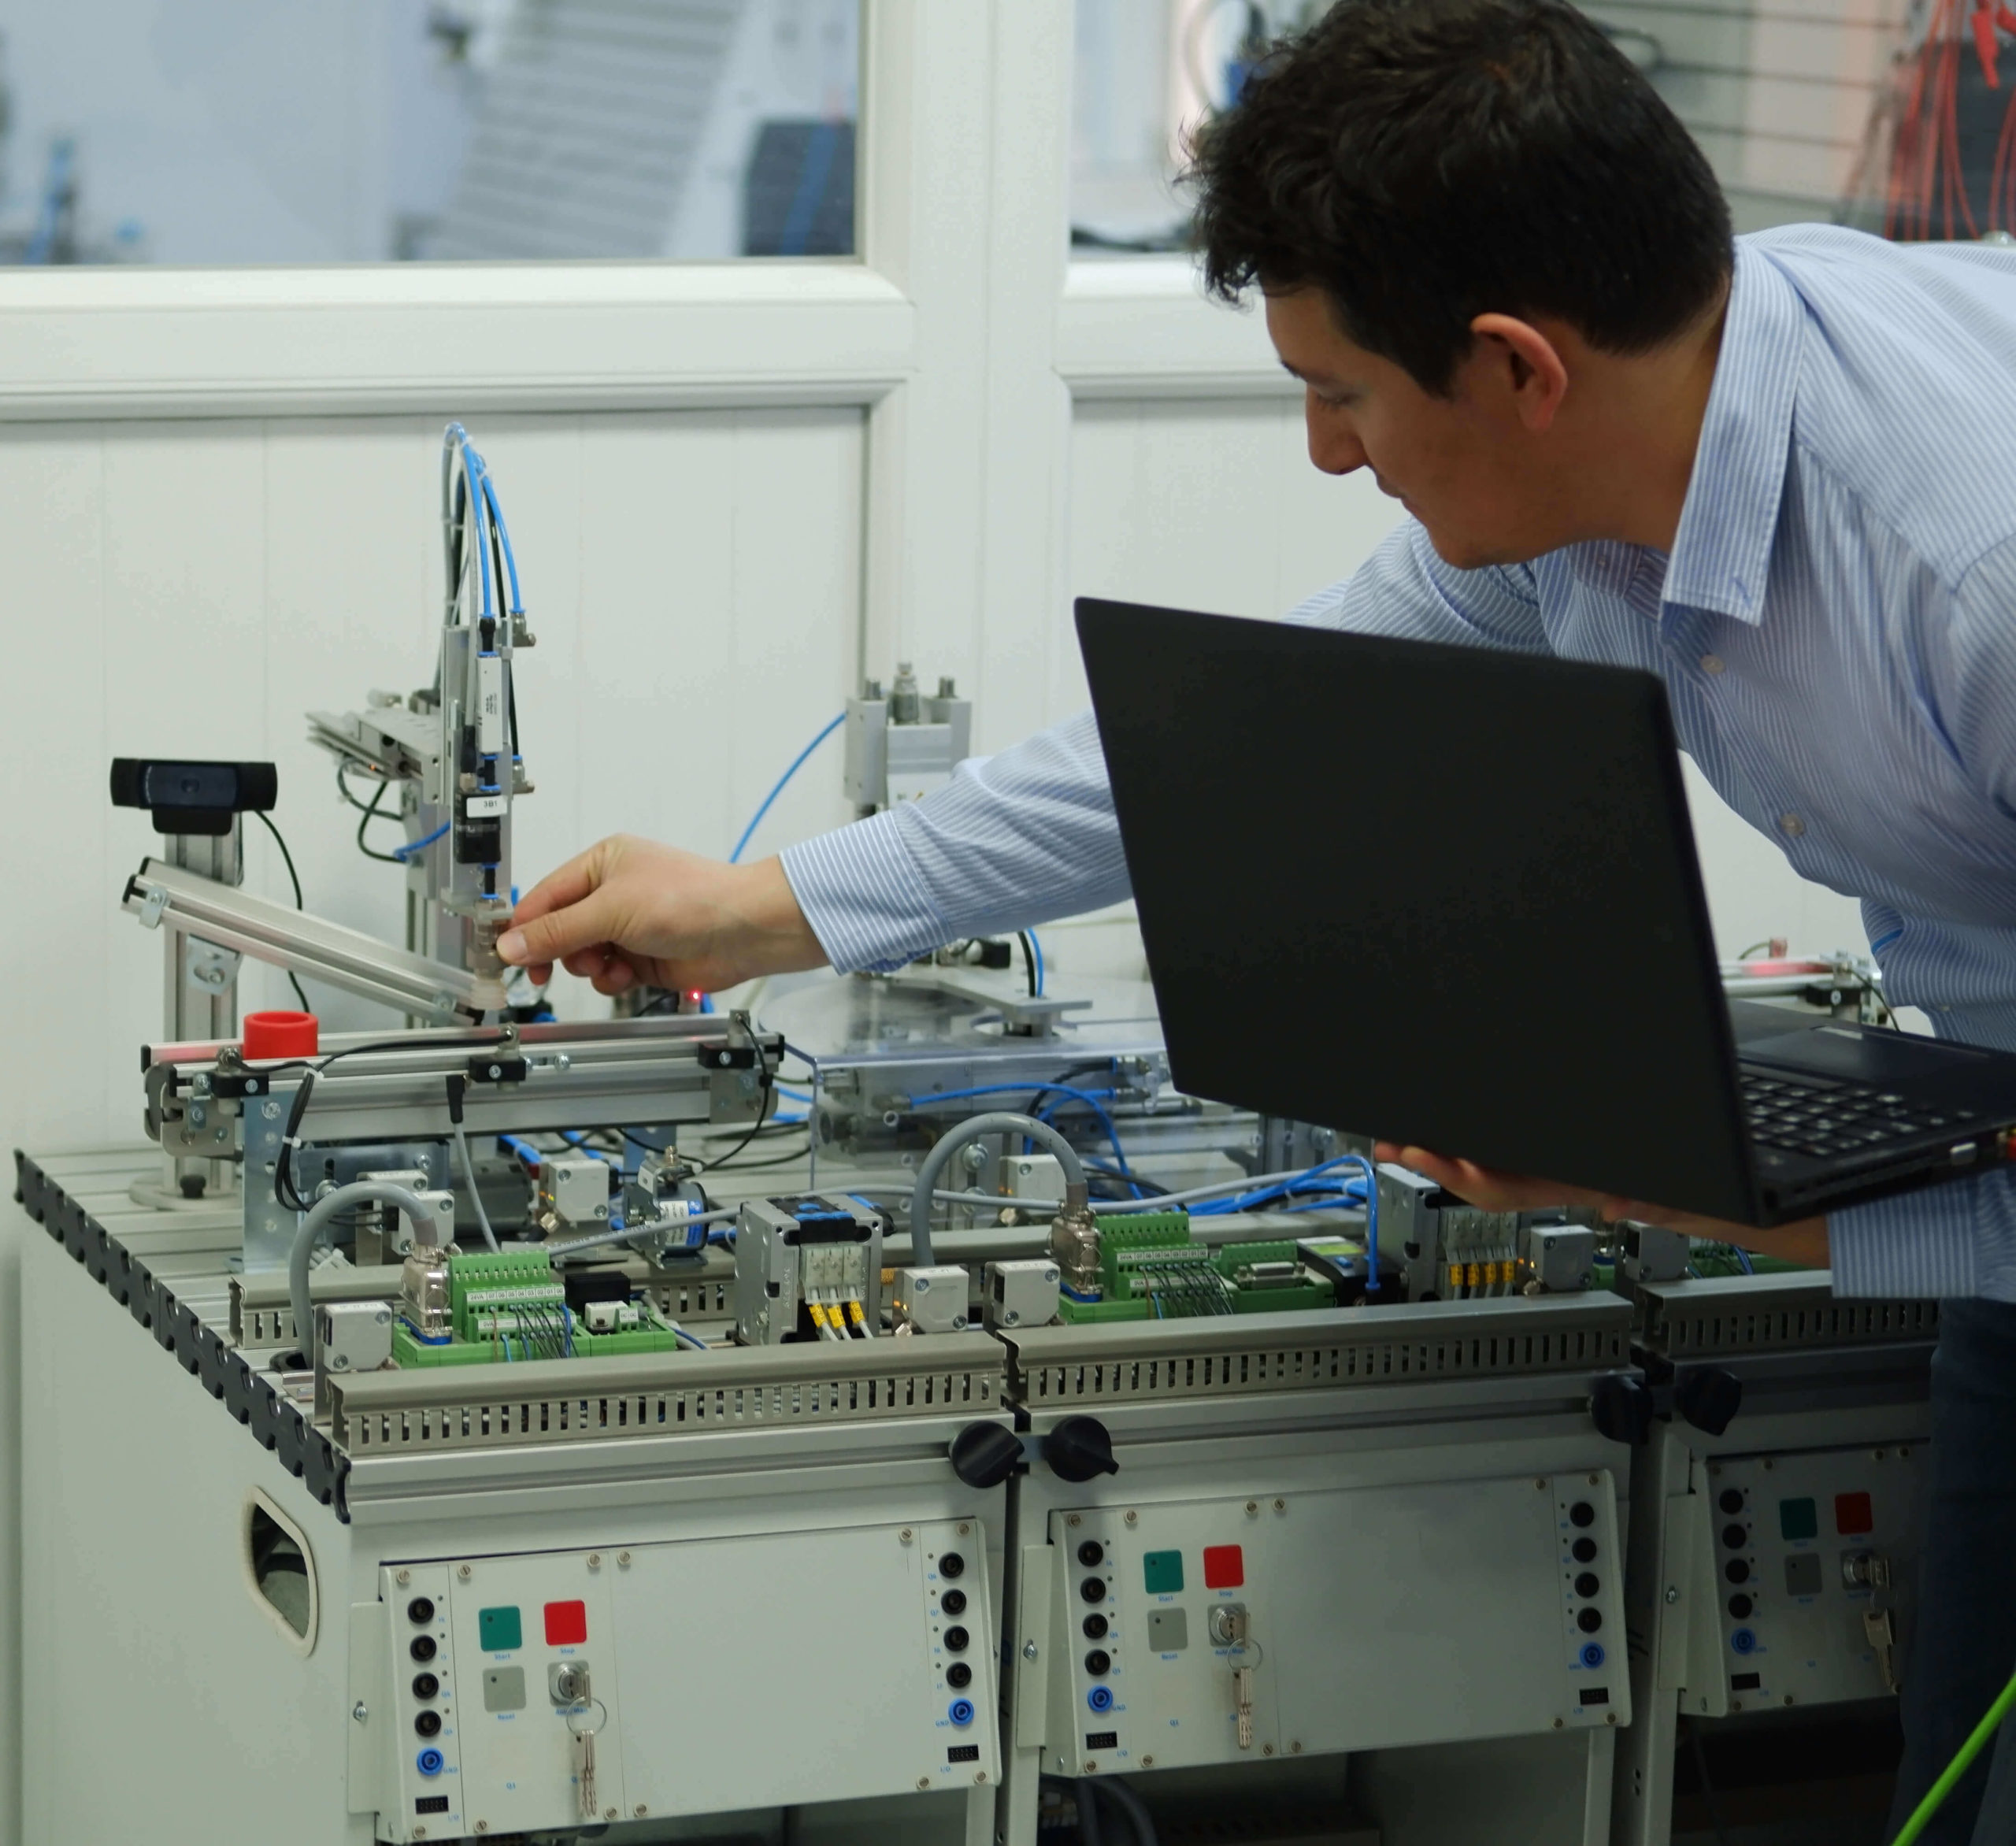 Man demonstrating seetings during a Robotics & automation course